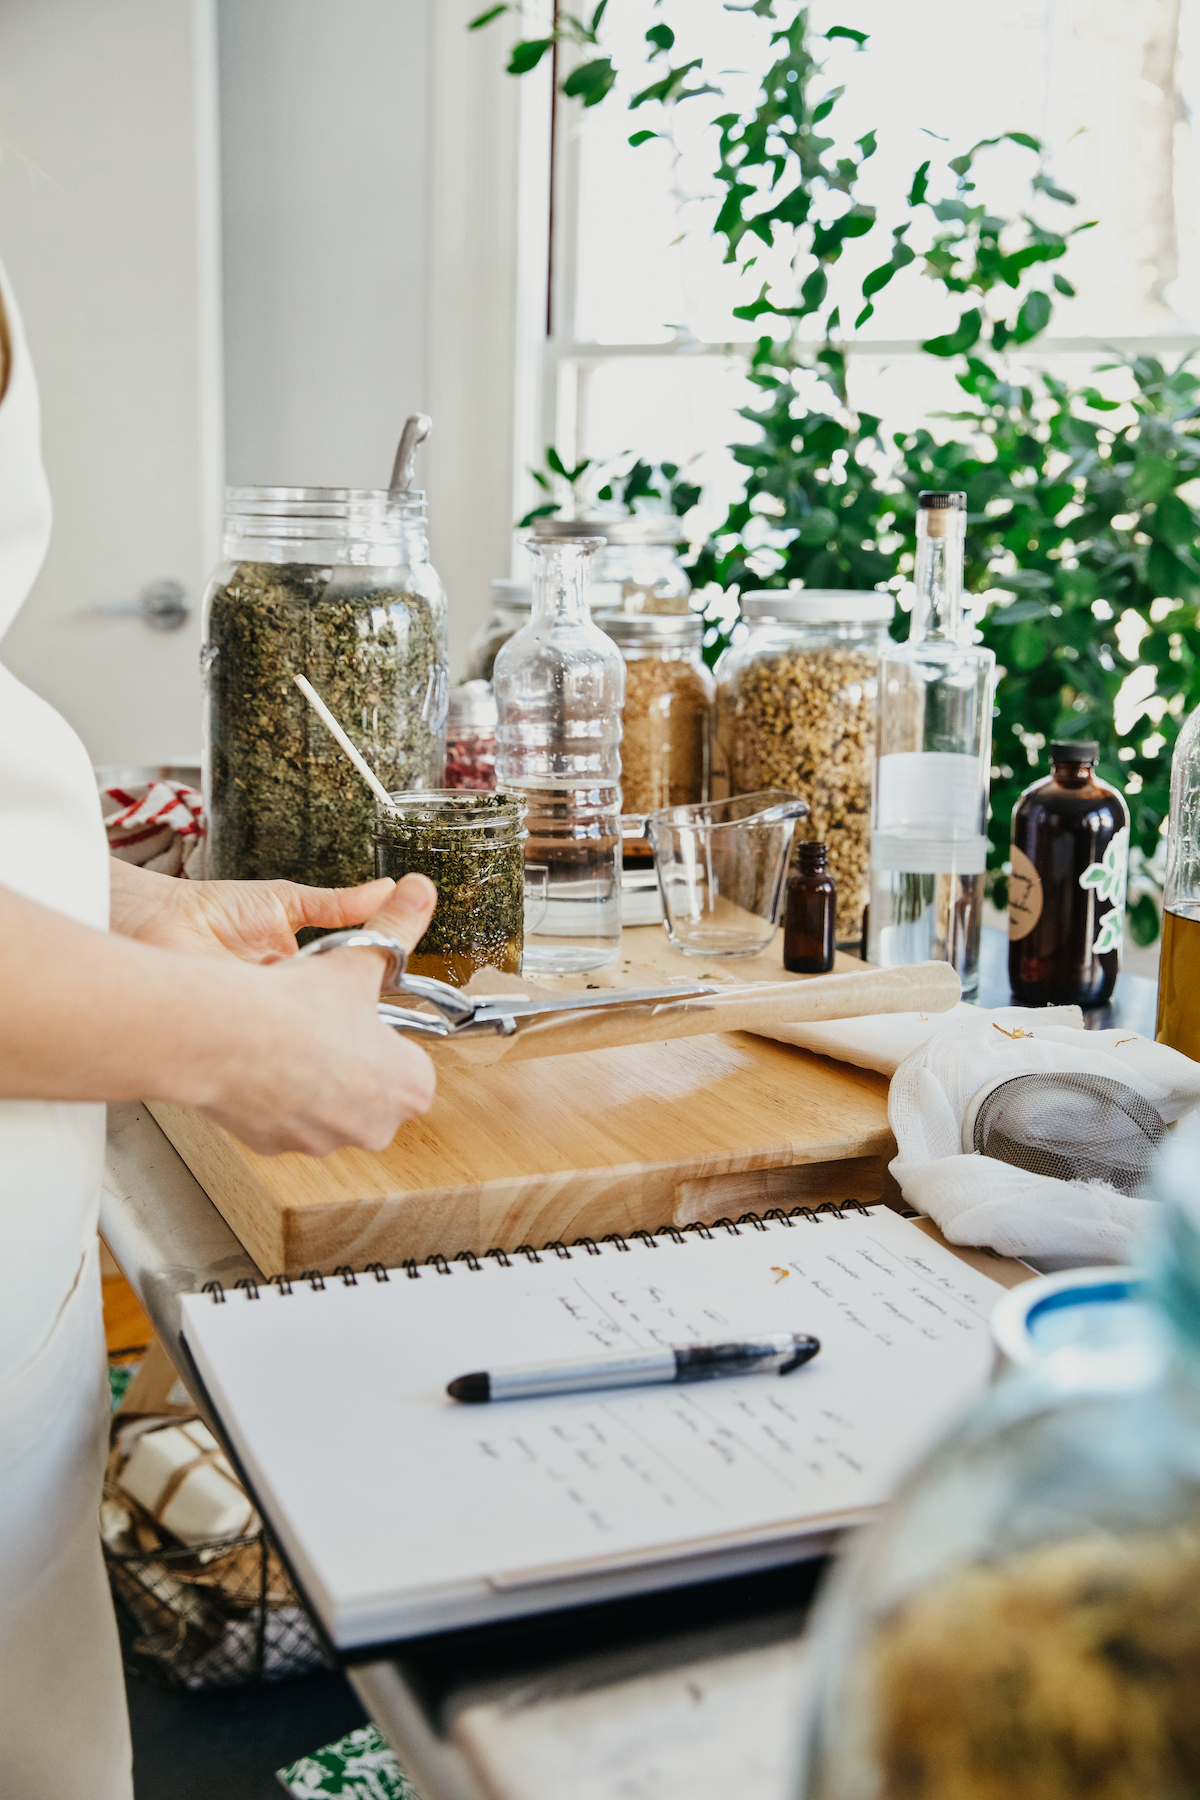 how to start an herbal business - Business Herbal Course